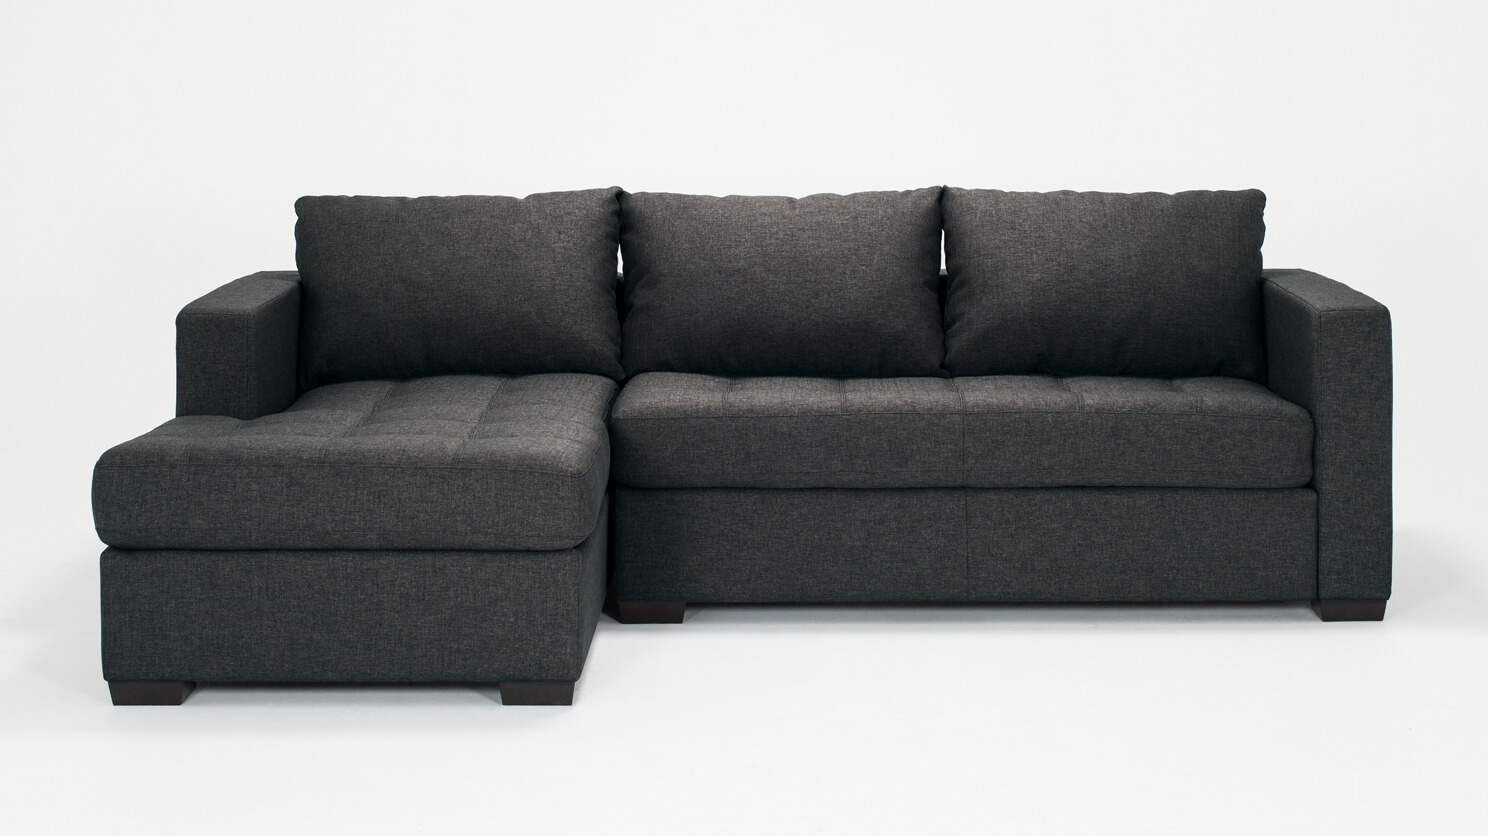 Porter 2-Piece Sectional Sofa with Chaise - Fabric | EQ3